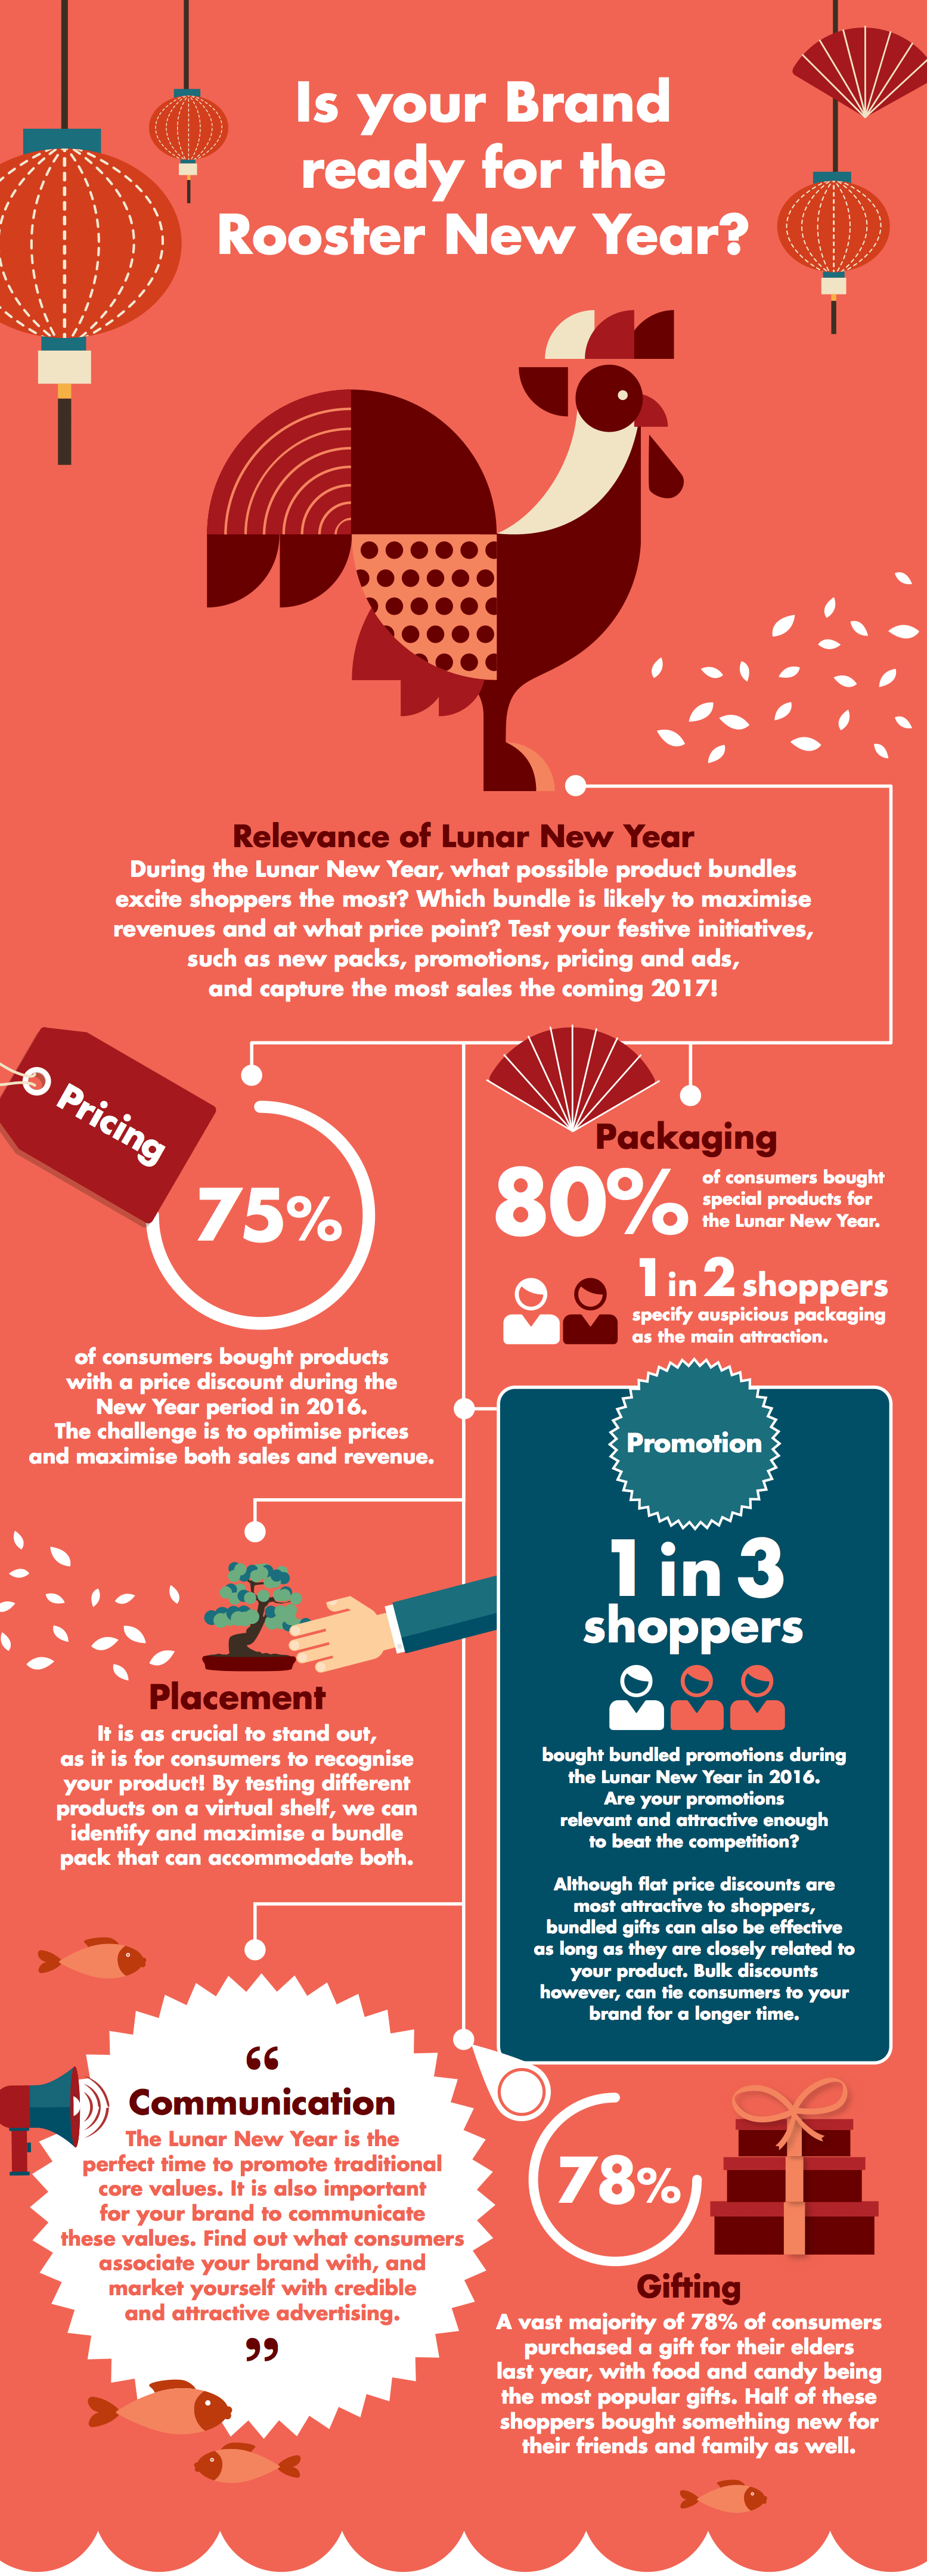 Rooster New Year Brand SKIM Infographic